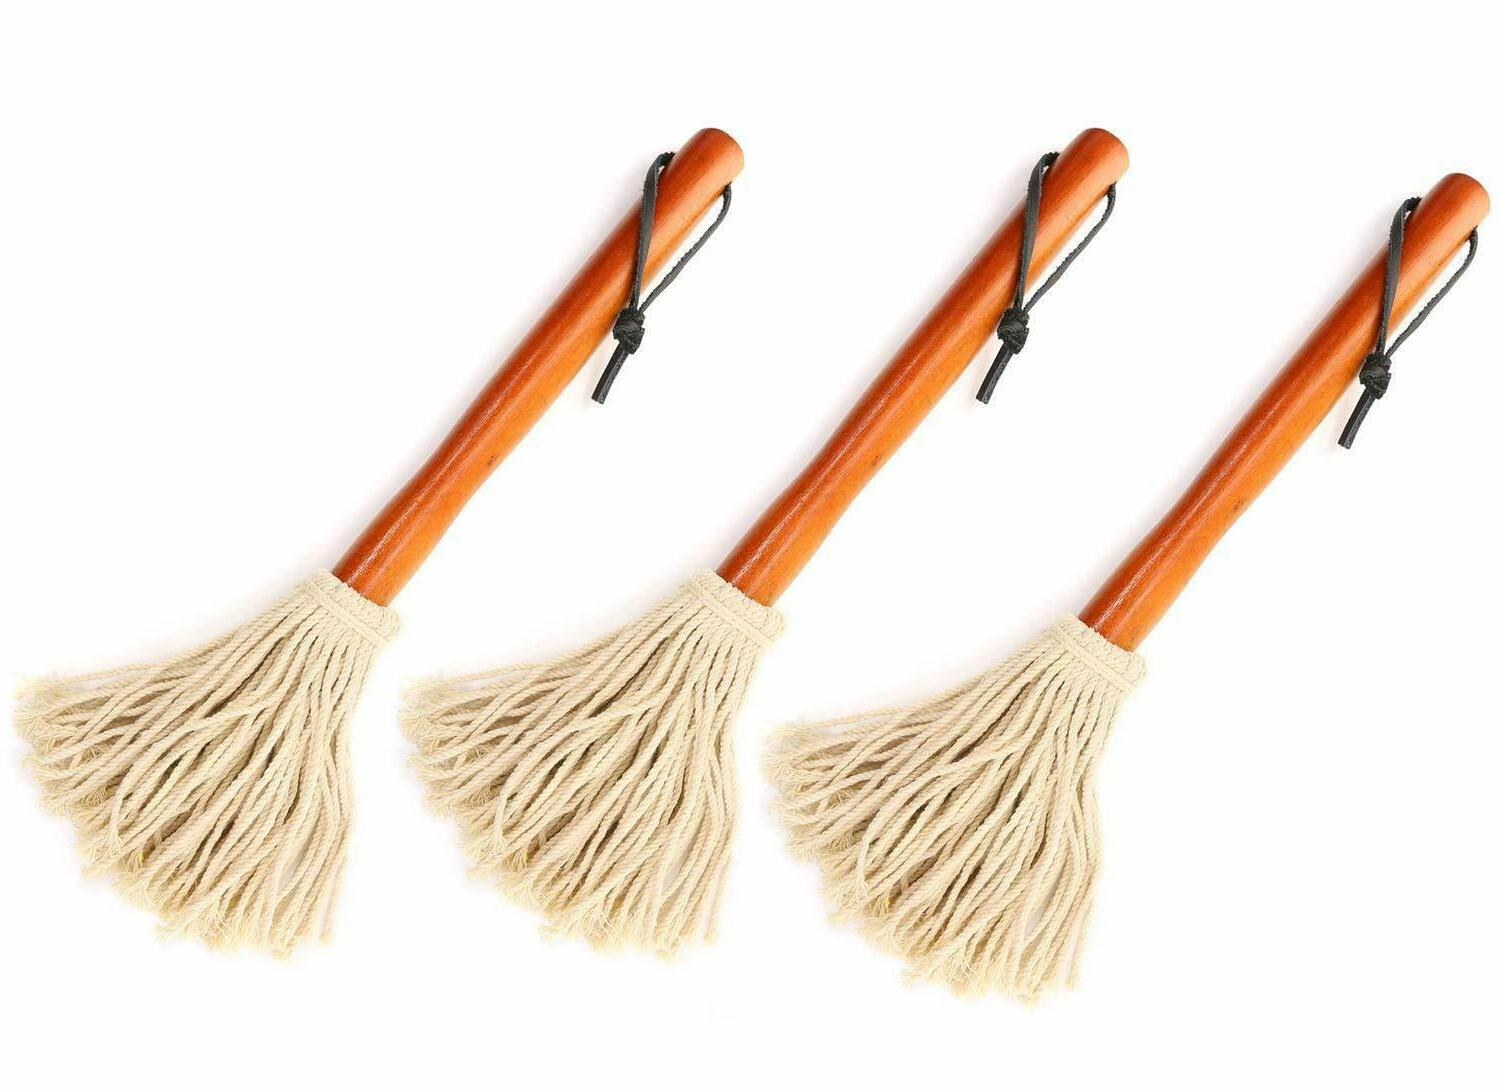 "3 Pack 12"" Basting Mops Grilling or"